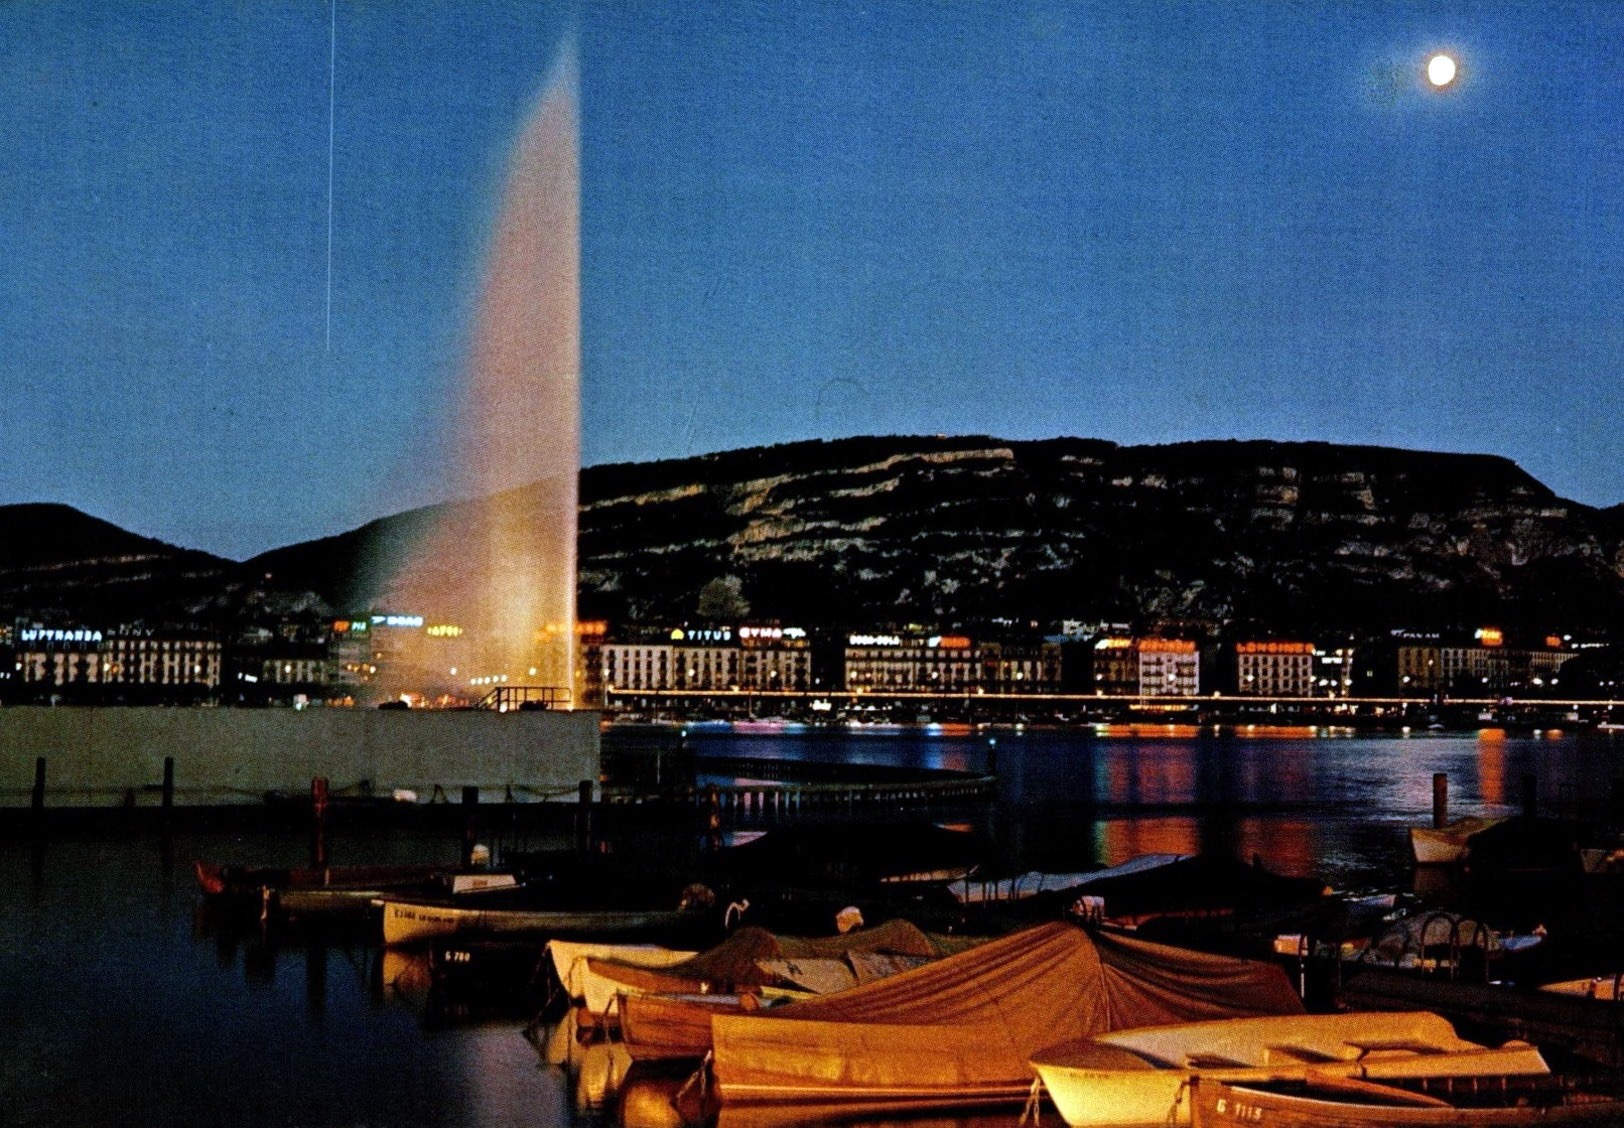 Vintage postcard of Geneva with a view of the Jet d'Eau and the Salève by moonlight.